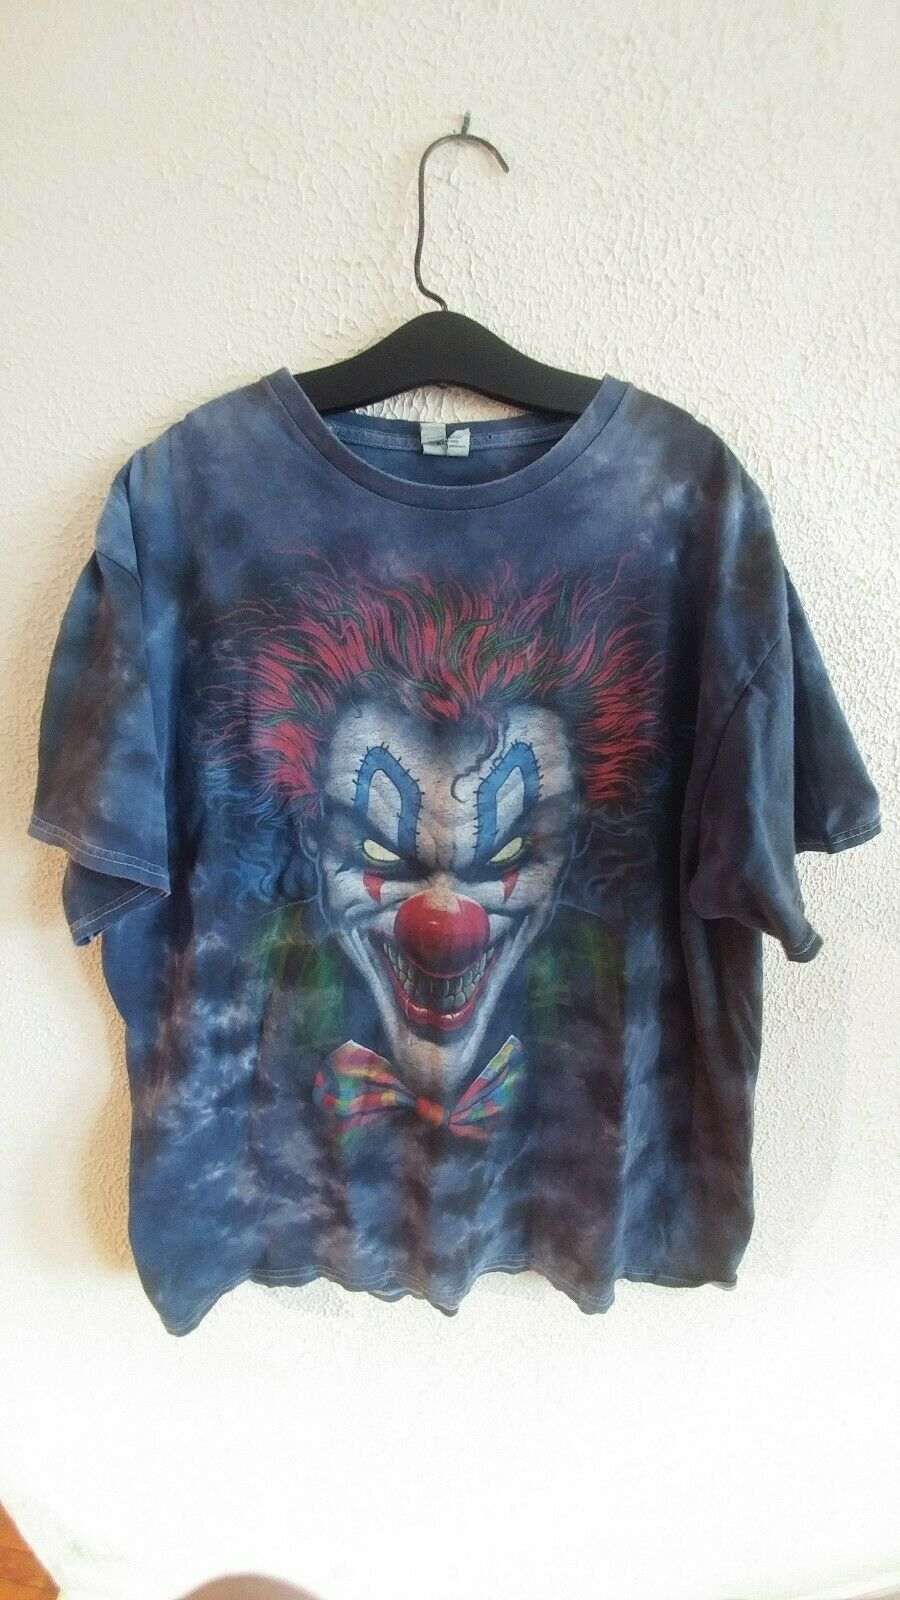 Vintage distressed Tie Dye Killer Clown t shirt xl pennywise holes hype street